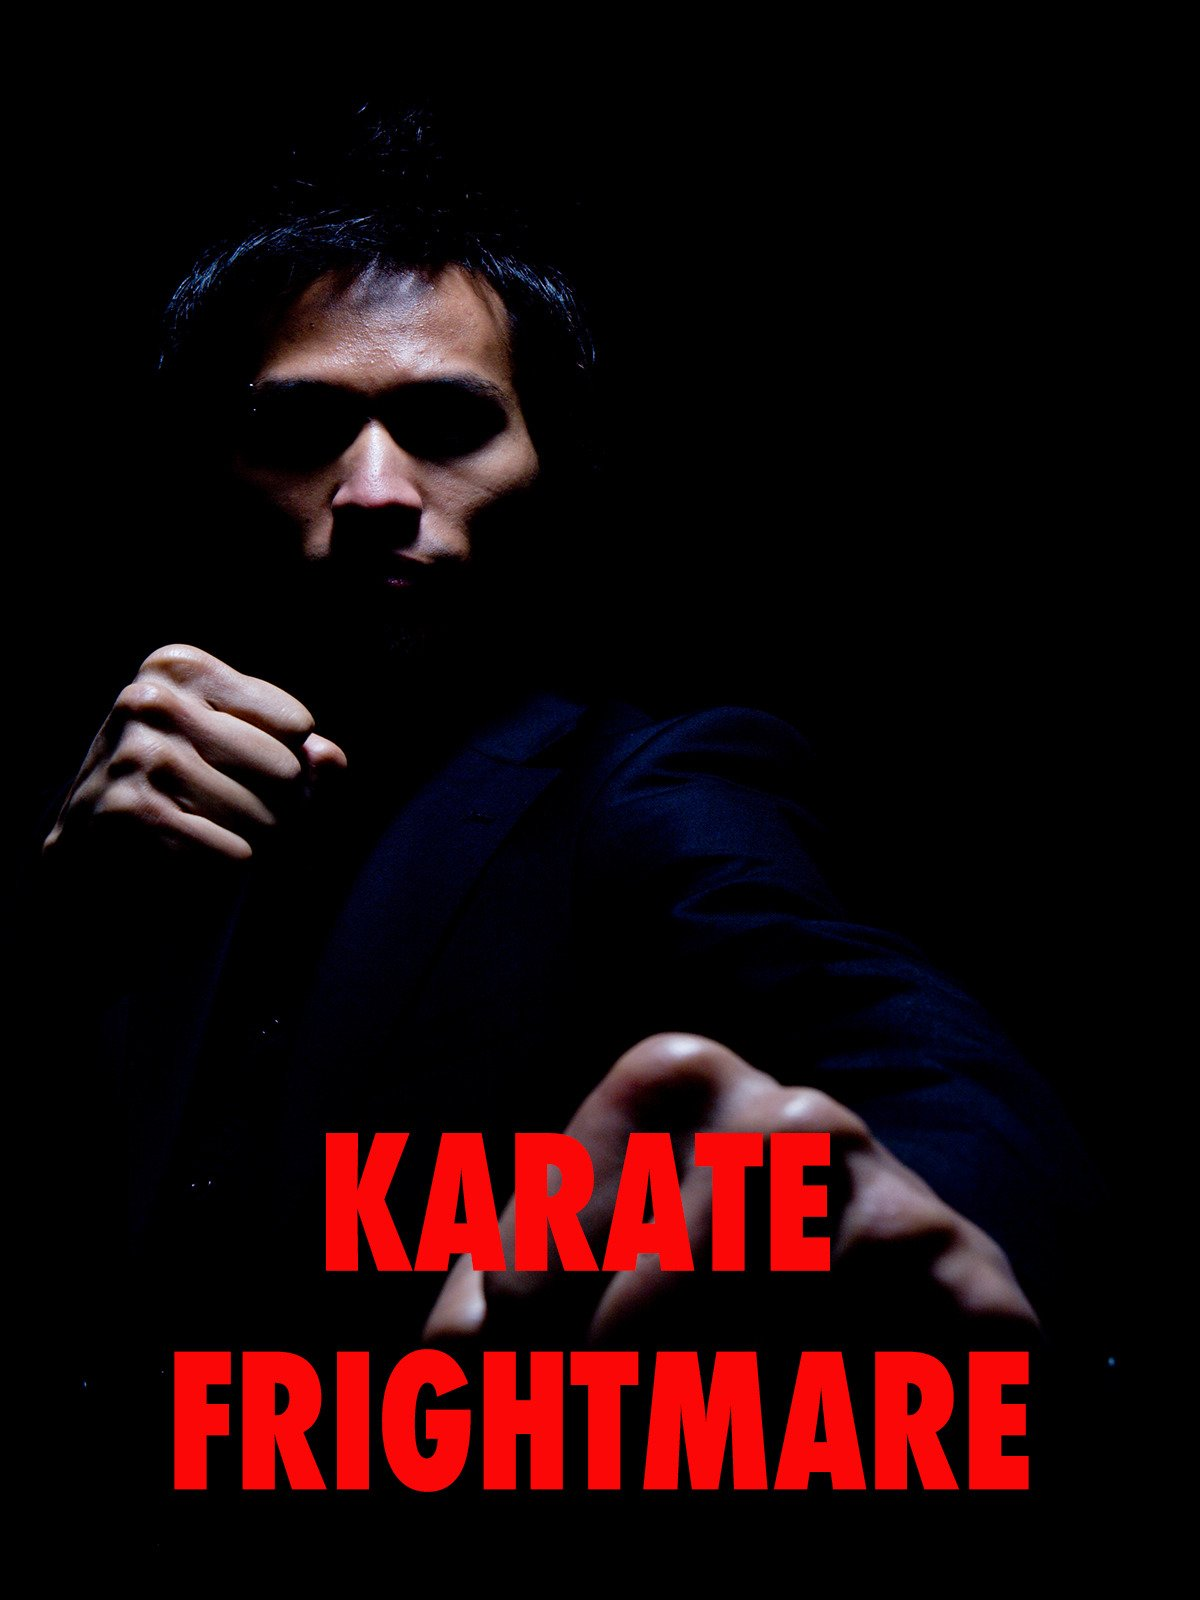 Karate Frightmare